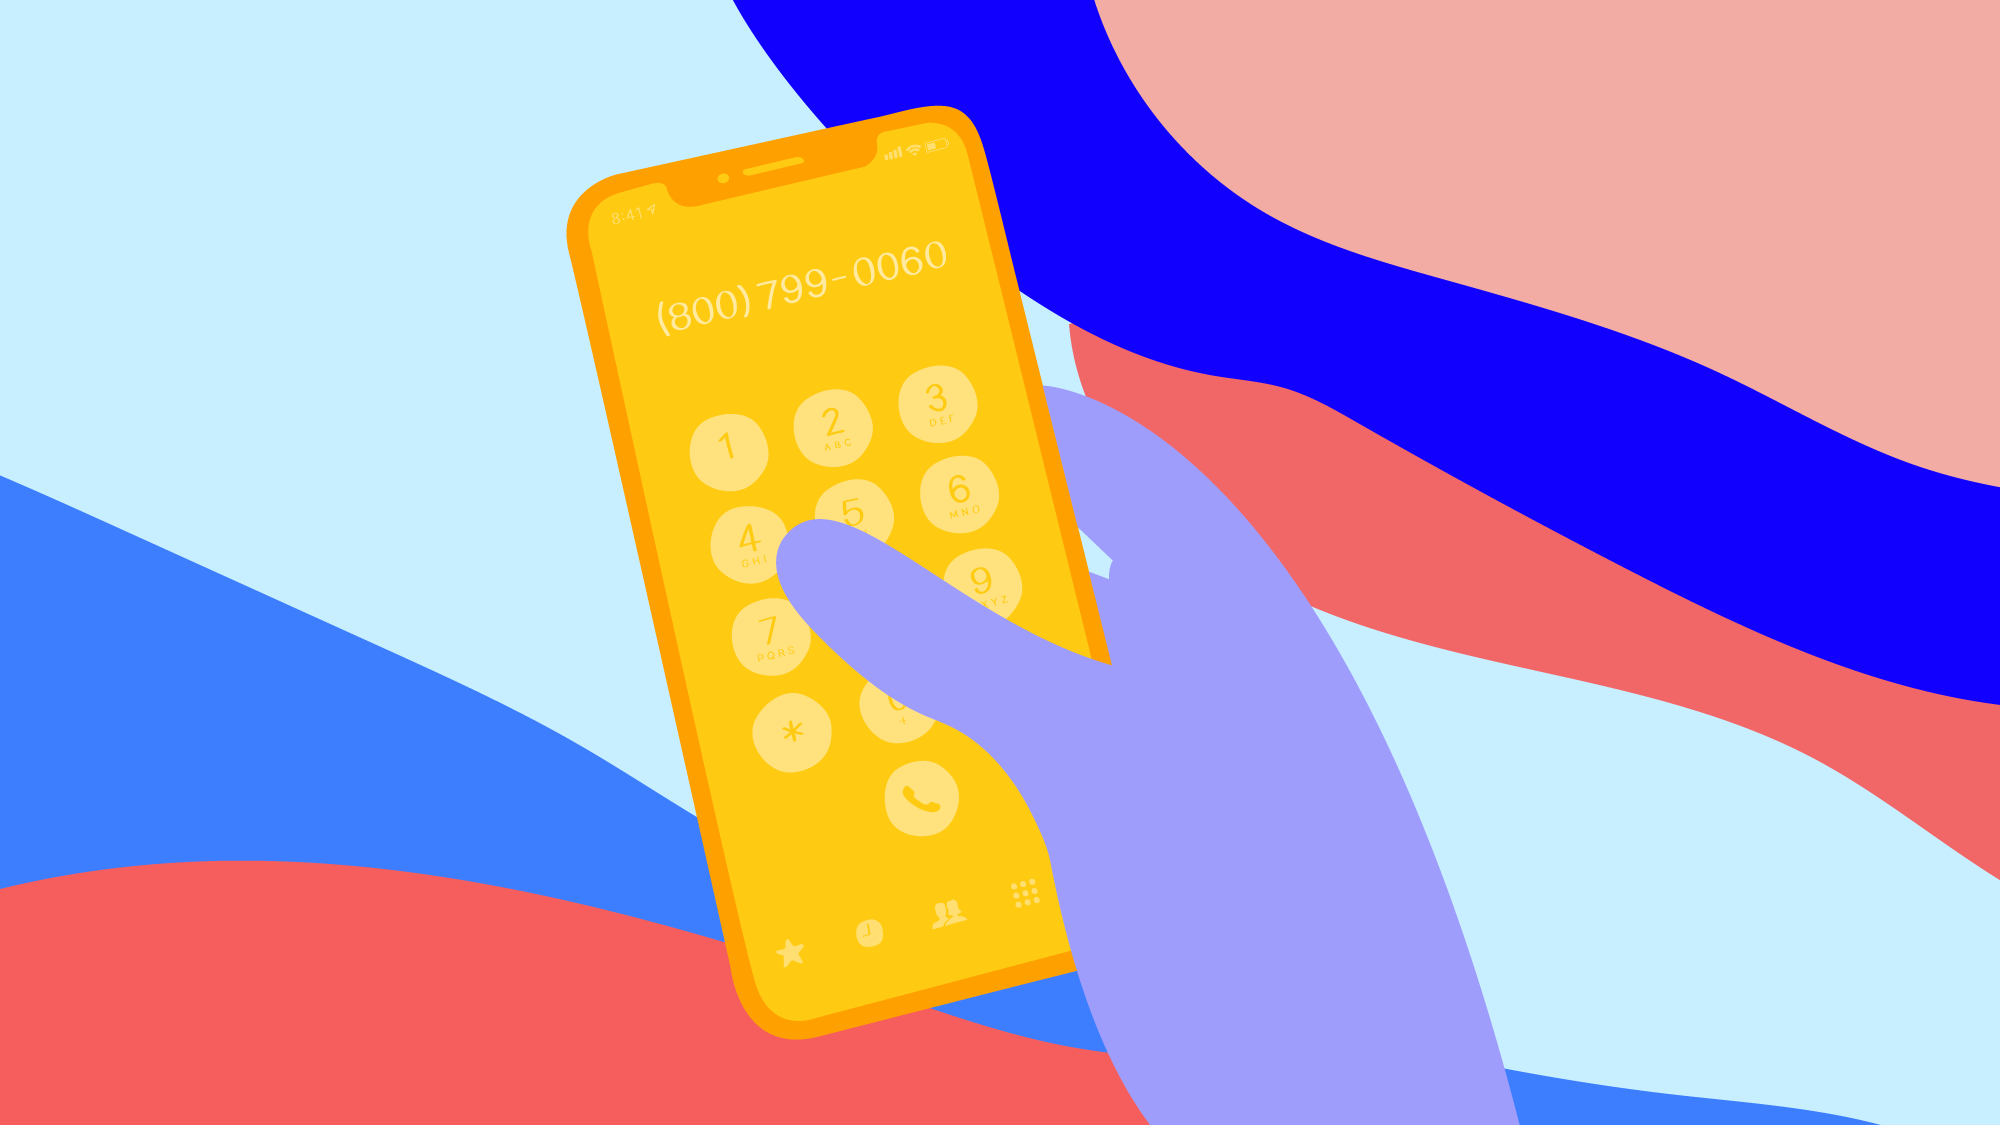 How Do I Get a Business Phone Number? {Updated 2020}